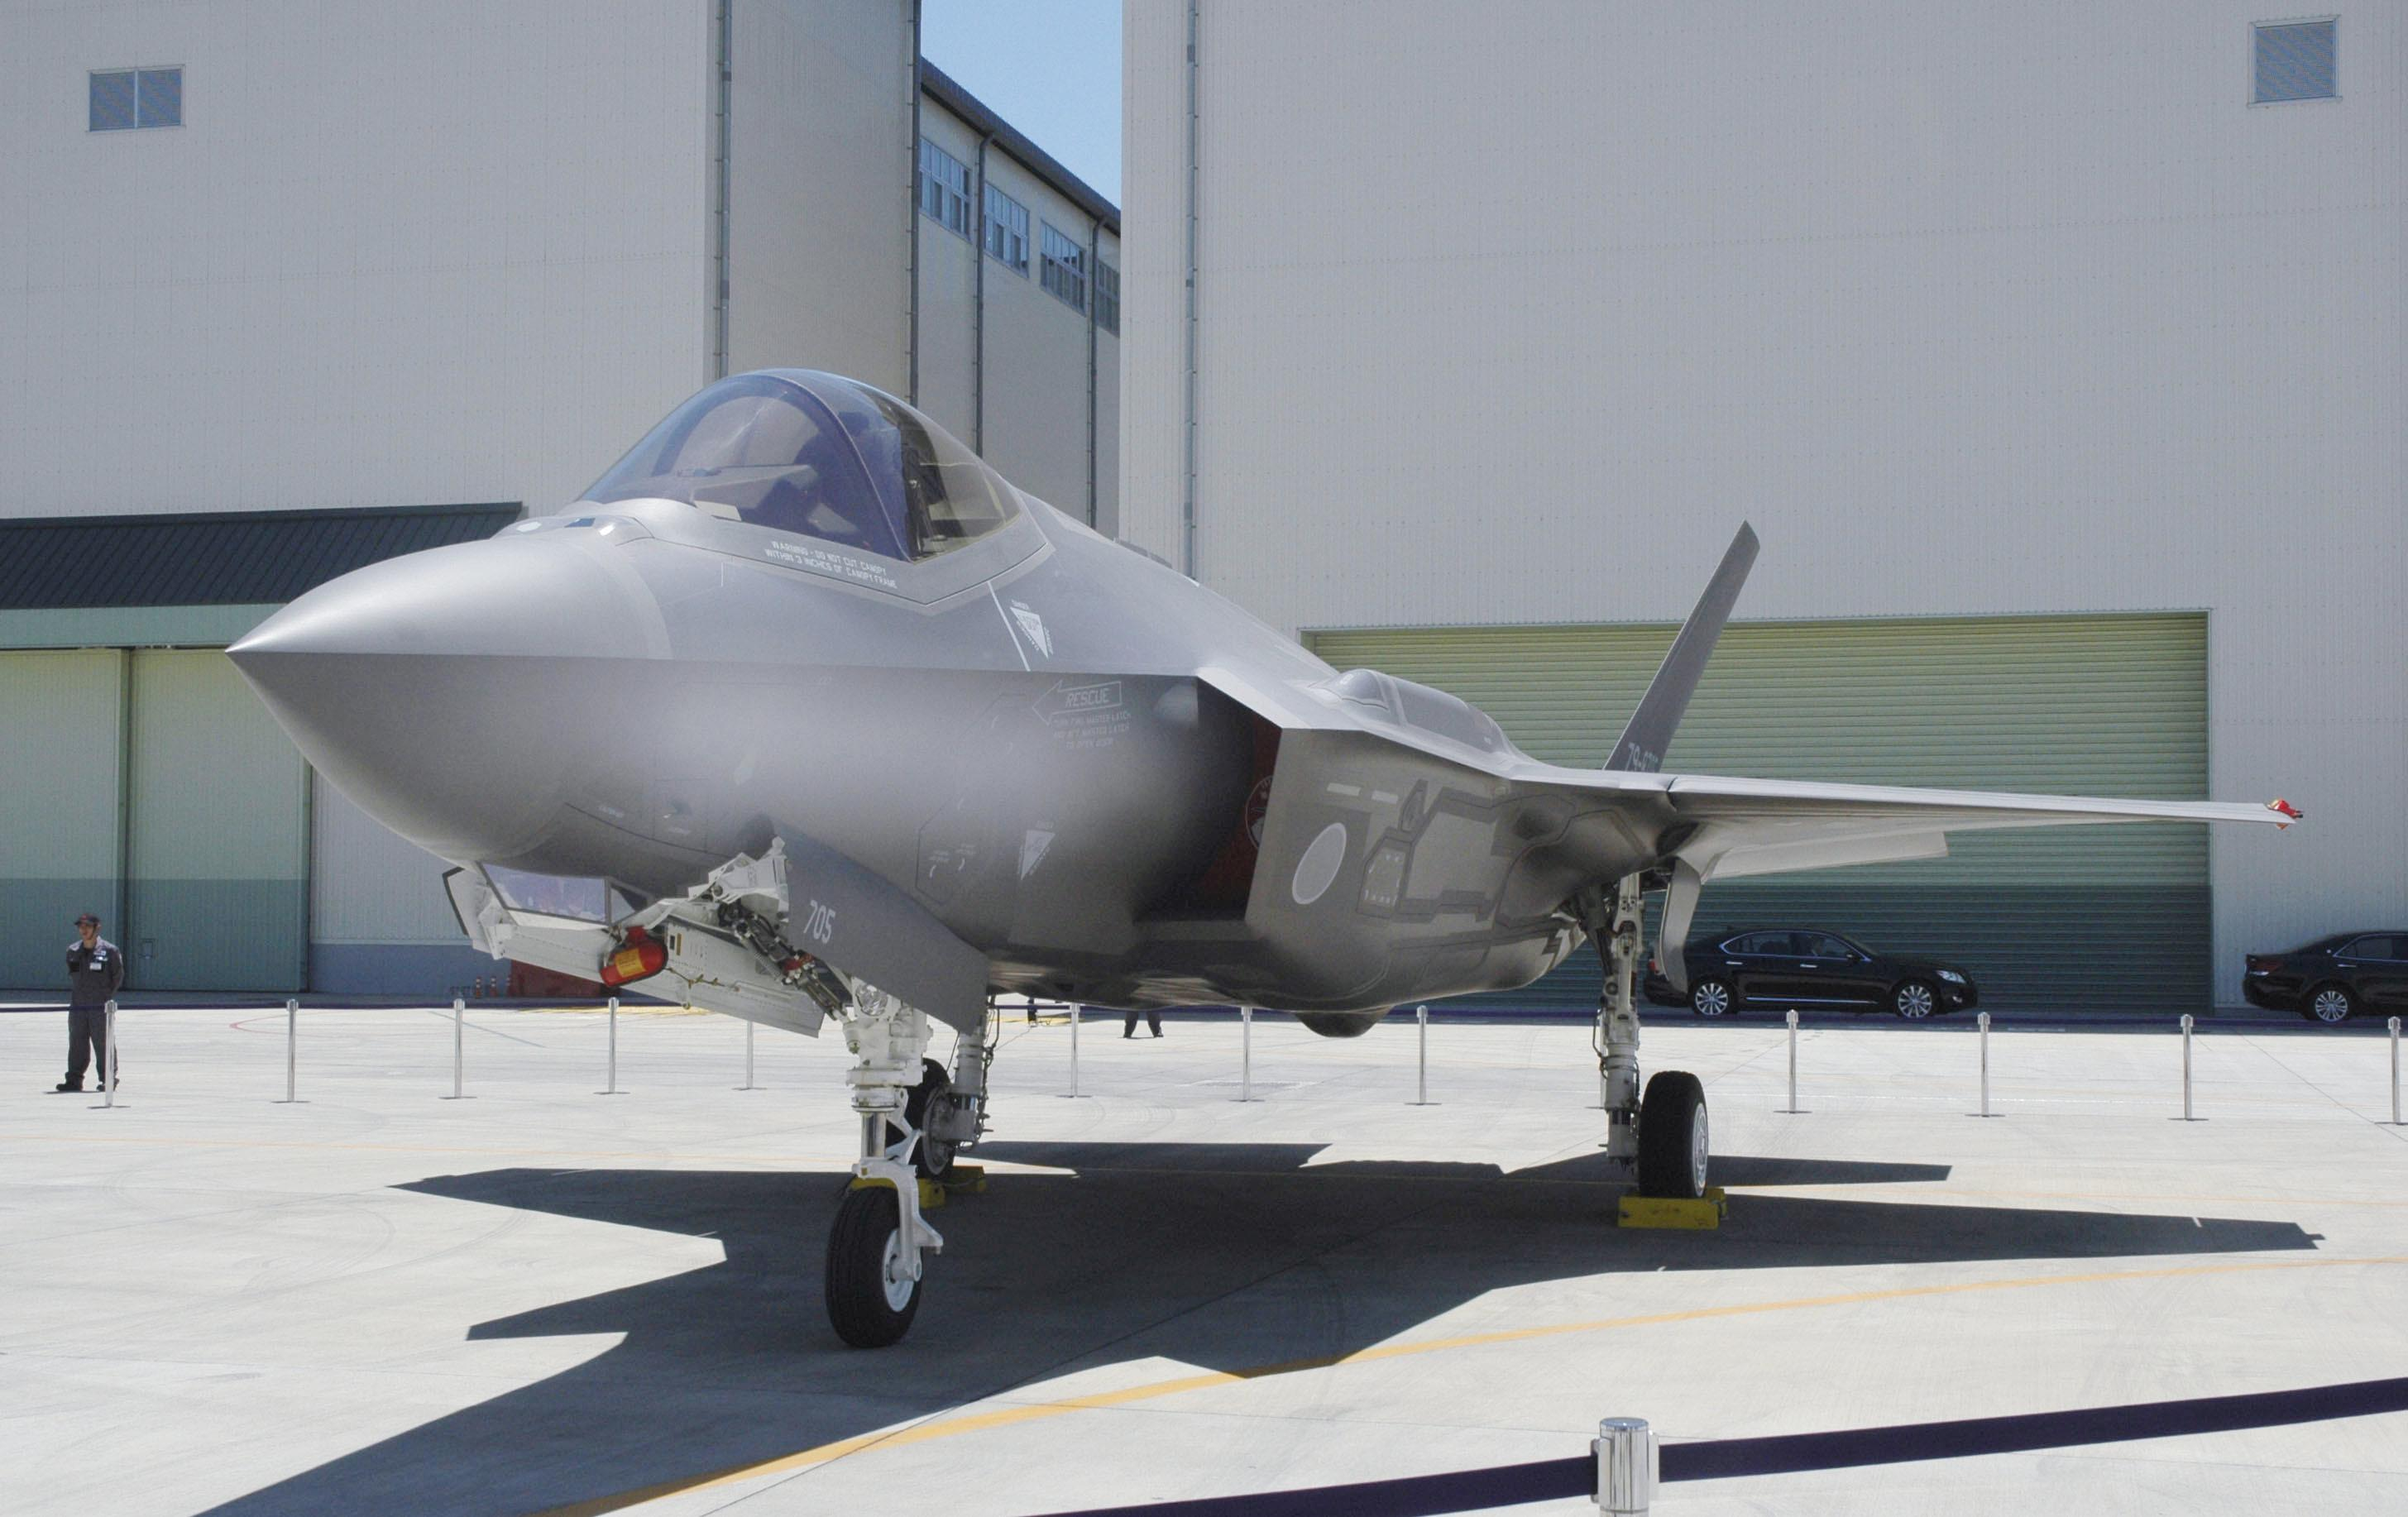 Daunting salvage task awaits Japanese F-35 investigators baffled by crash